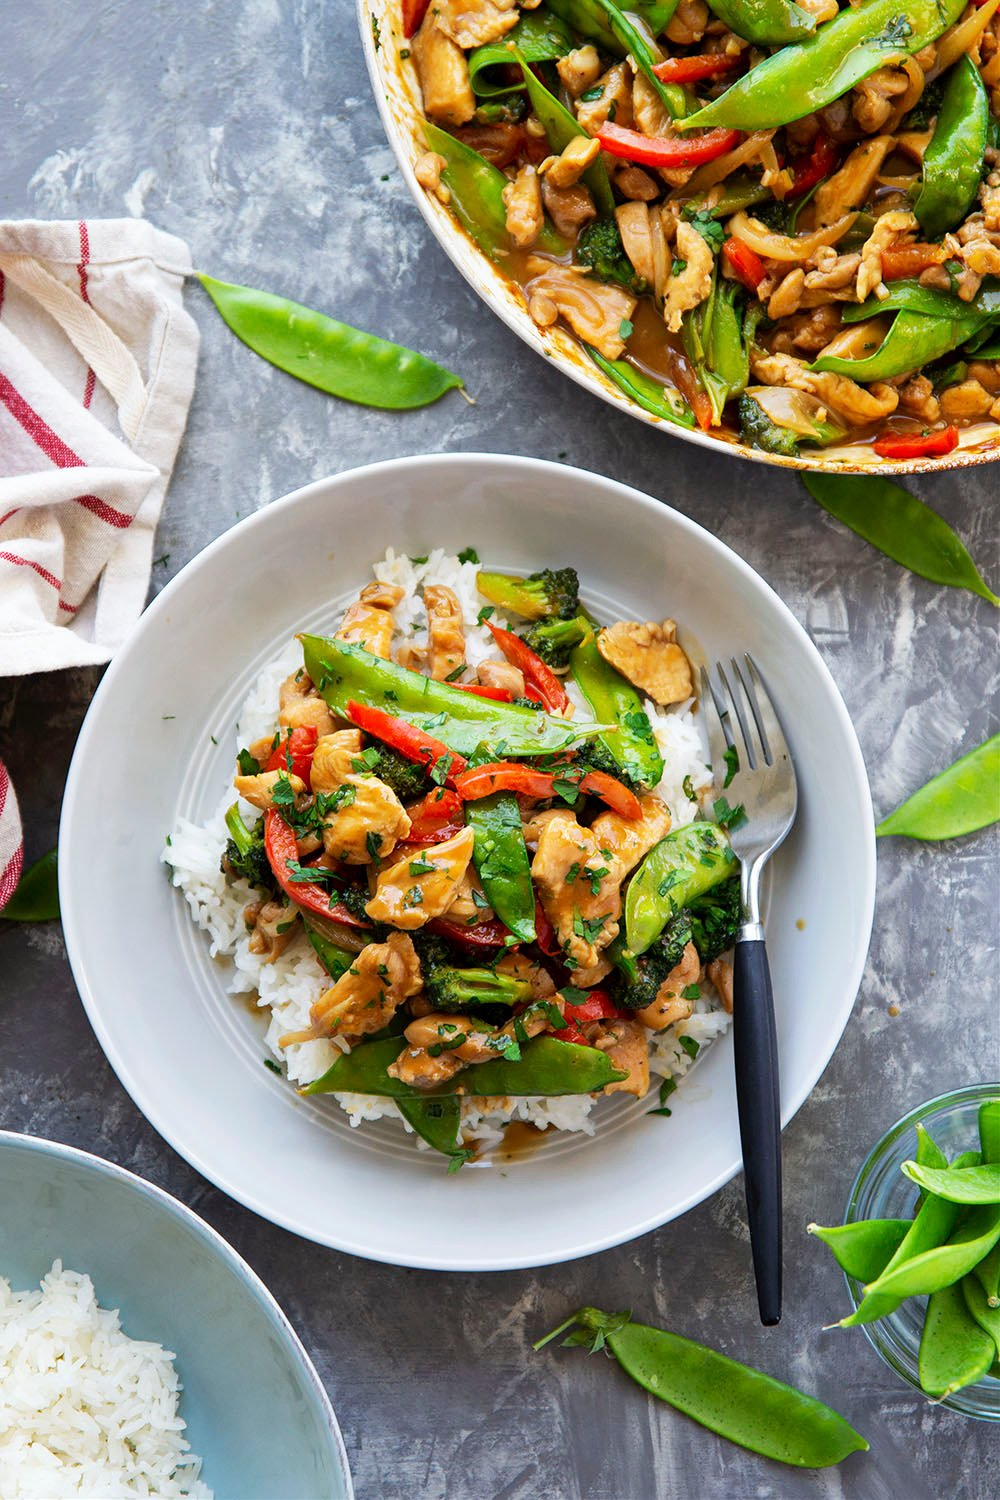 A savory peanut sauce covers every inch of this flavorful peanut satay chicken stir fry! Load it up with all your favorite vegetables and pile it over hot fluffy rice.